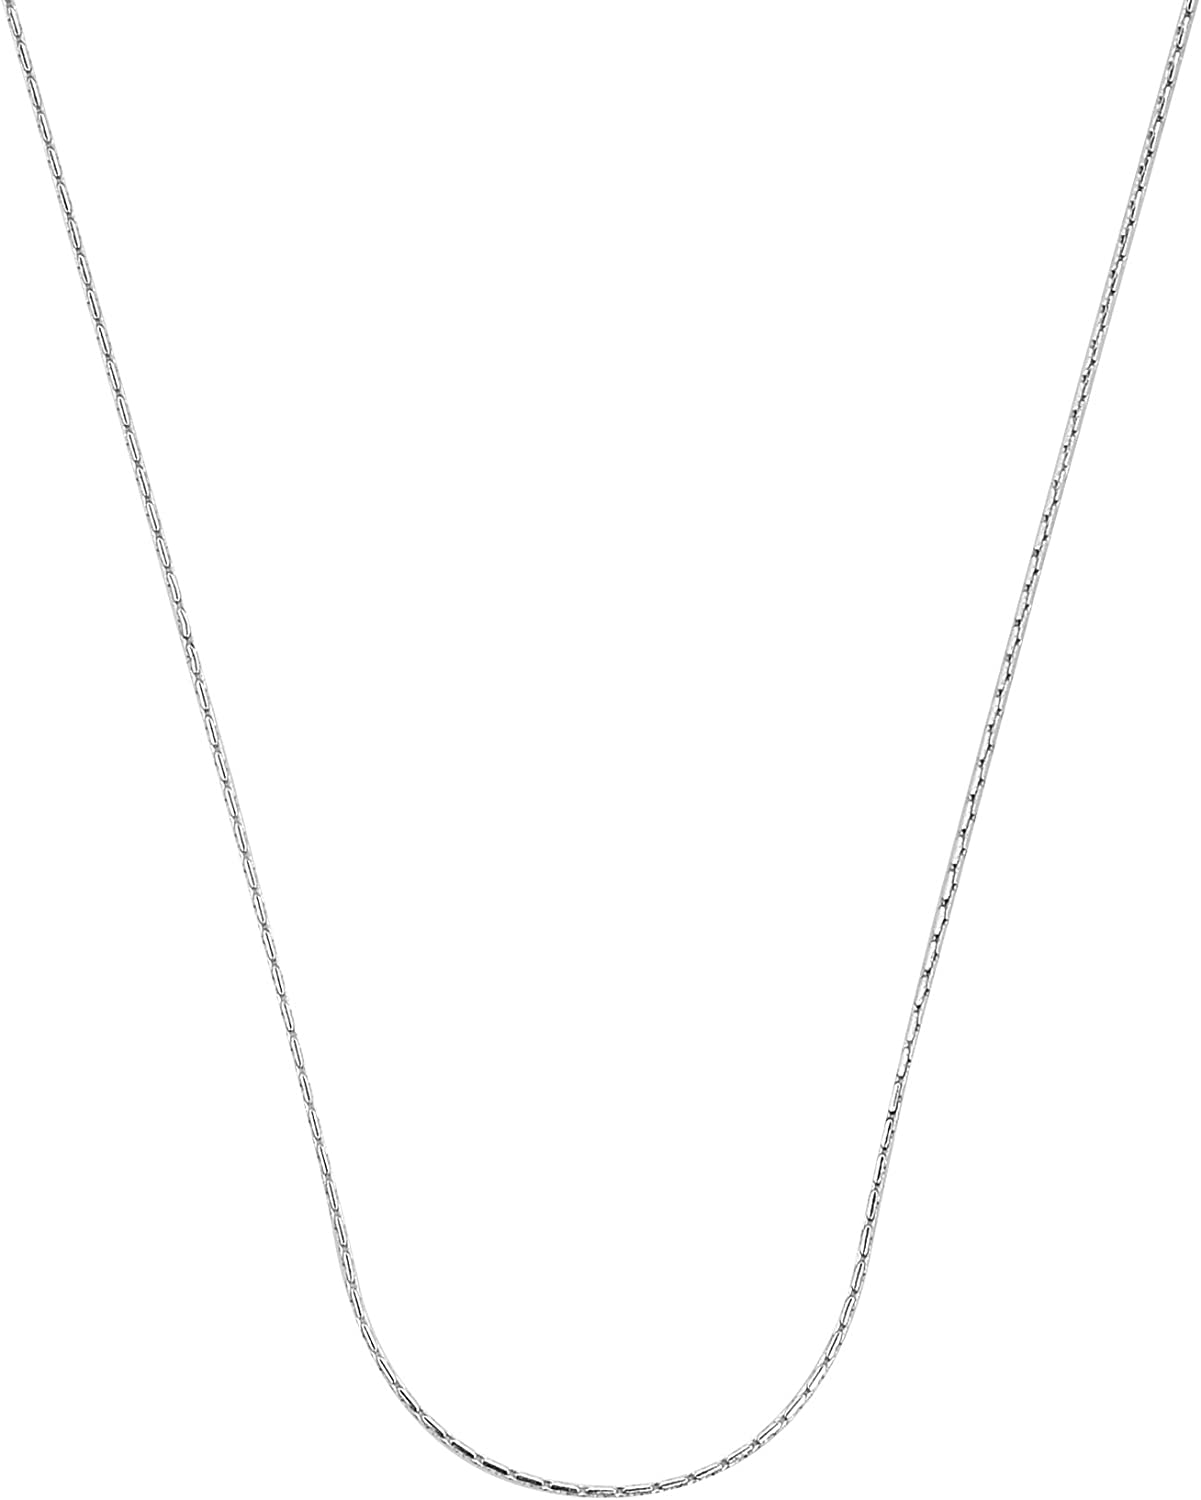 AeraVida Delicate 0.5 mm .925 Sterling Silver Cardinal Chain Necklace-16 inches